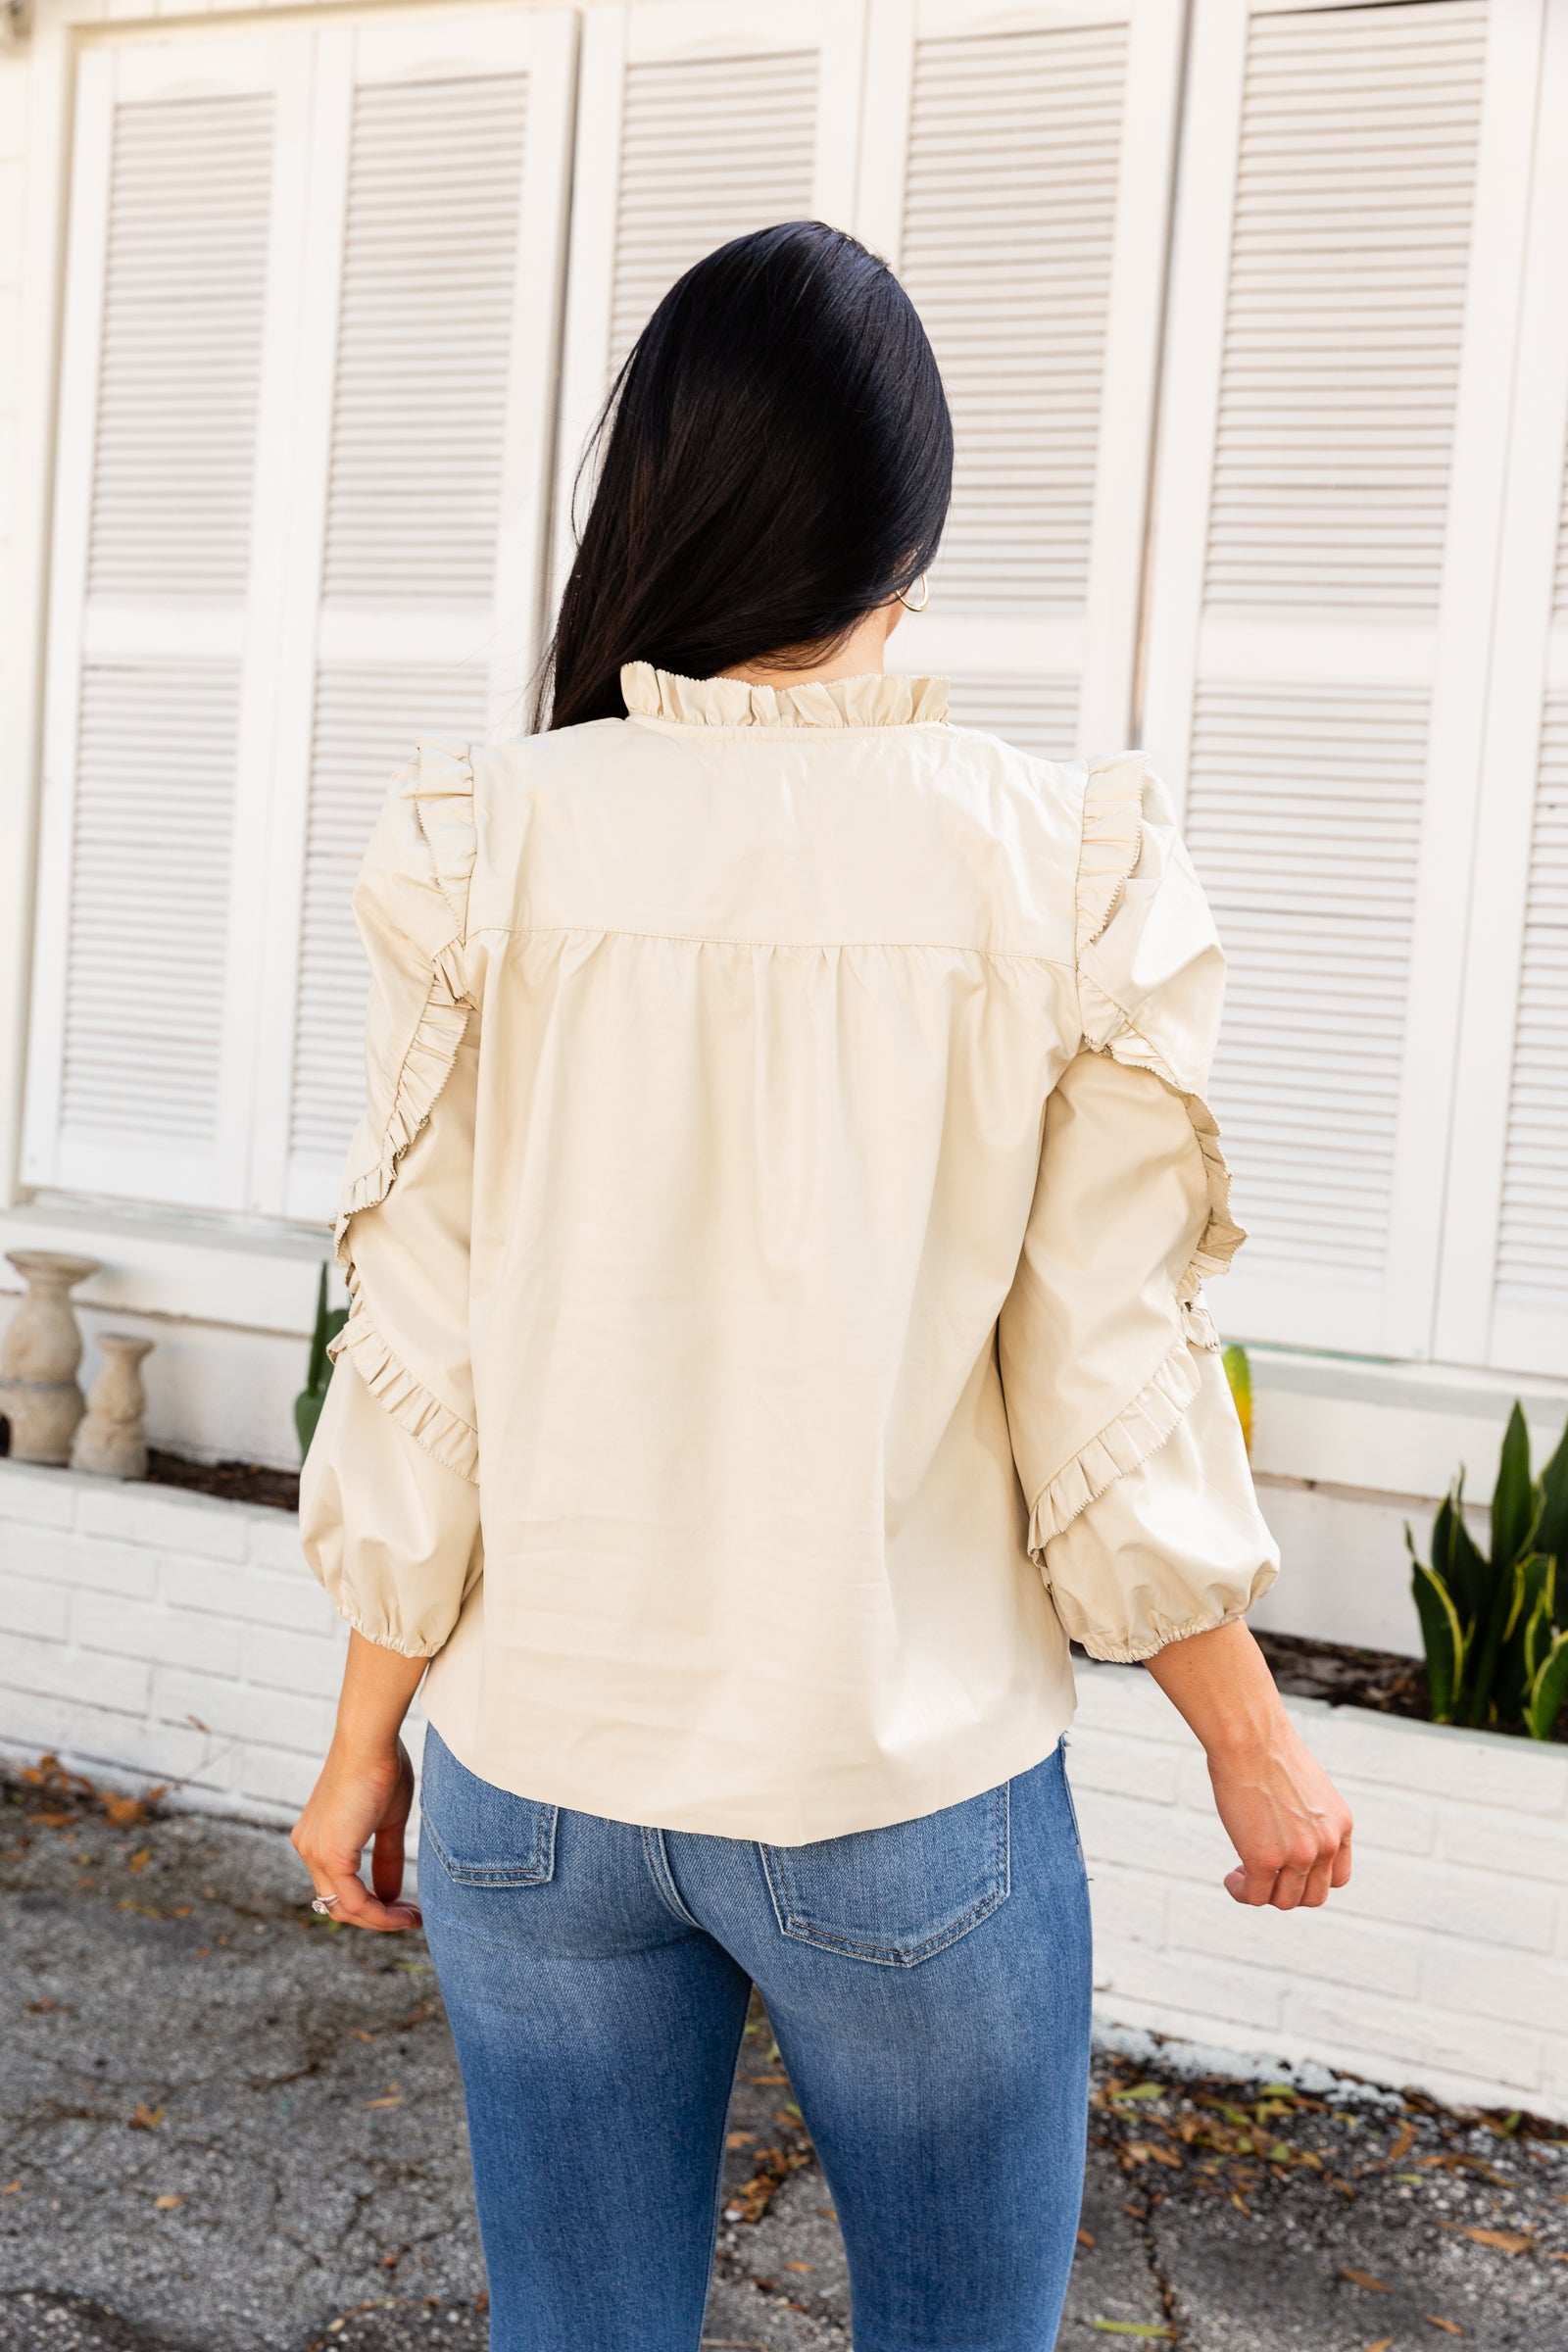 Faux leather blouse has mid-length elastic cuffed and puffed sleeves with ruffled details that attach to a ruffle v-neckline with a tassel tie and an oversized relaxed bodice.